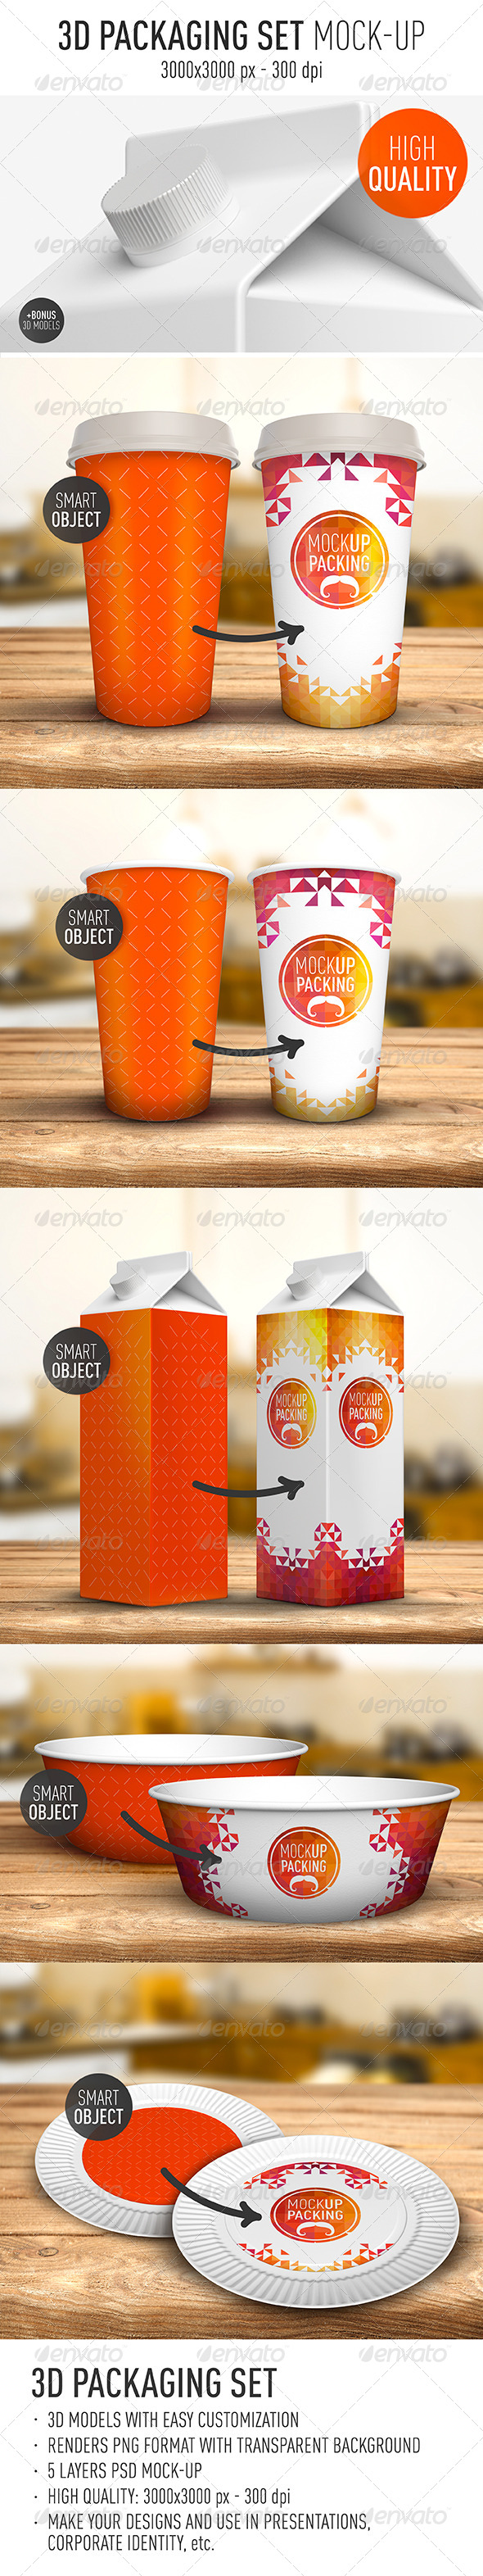 Packaging Set Mock-Up